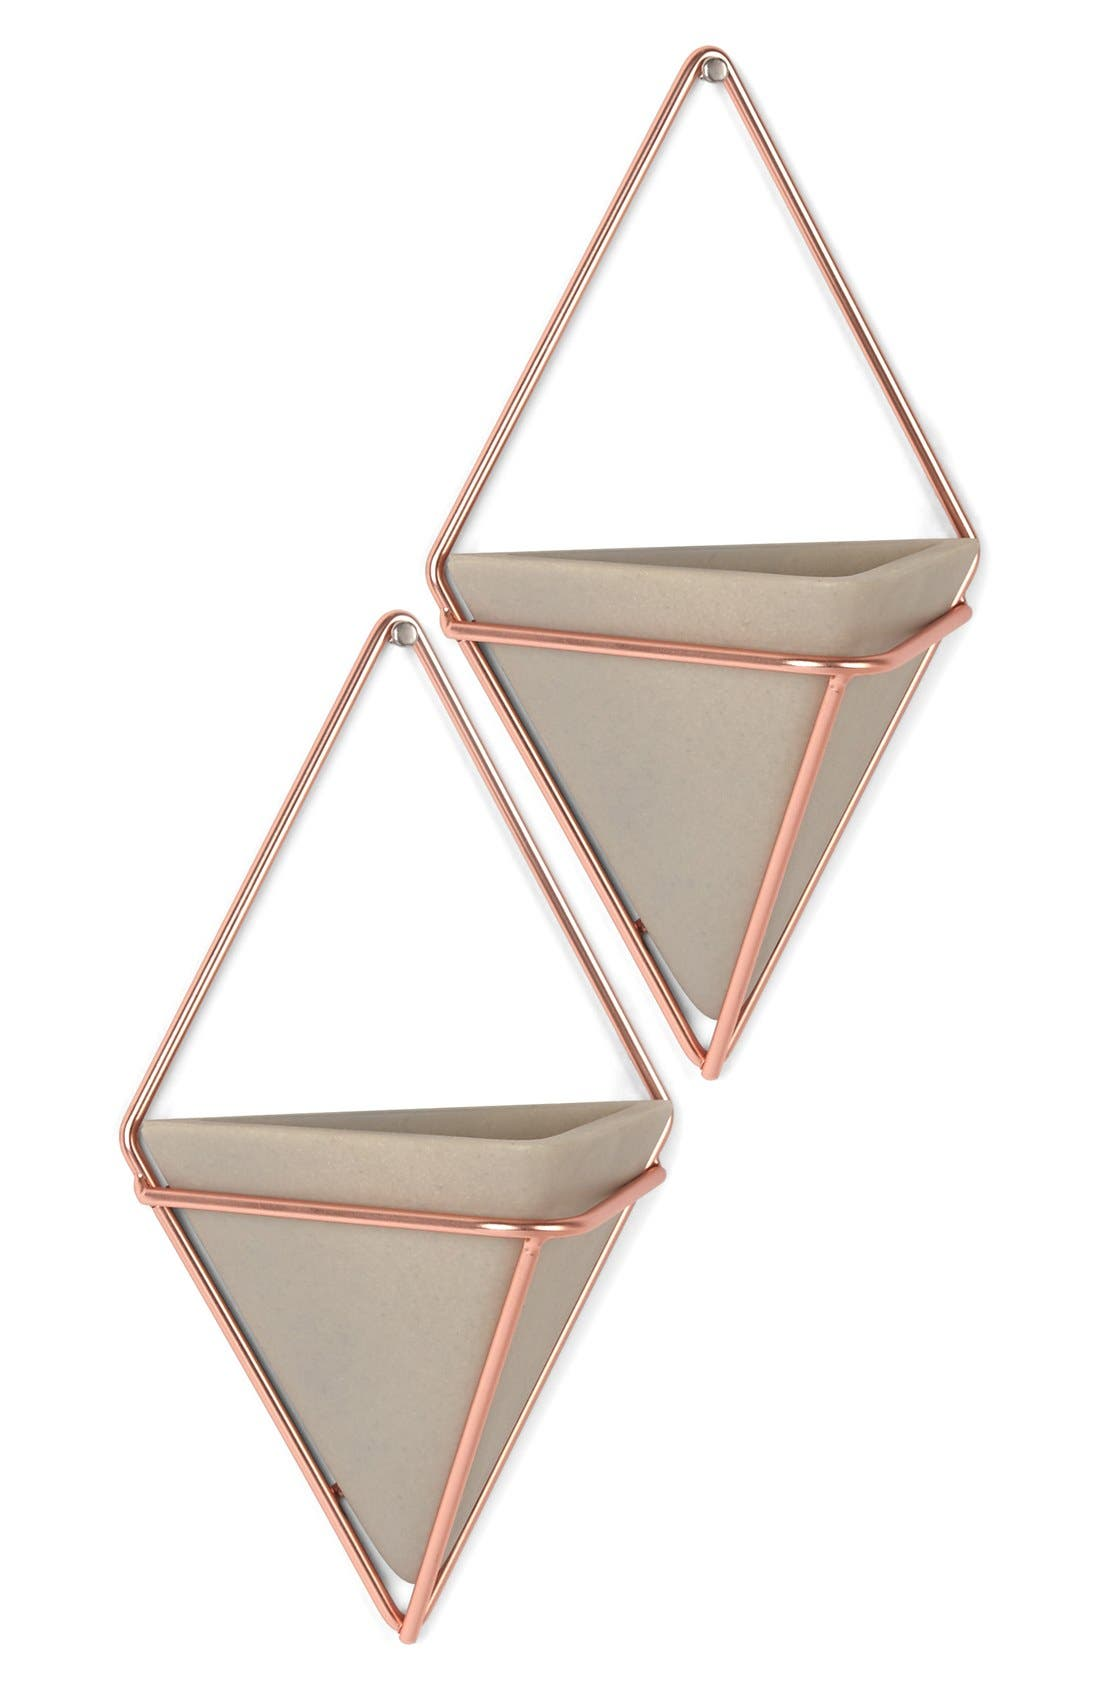 Alternate Image 1 Selected - Umbra 'Trigg Small' Wall Vessel (Set of 2)